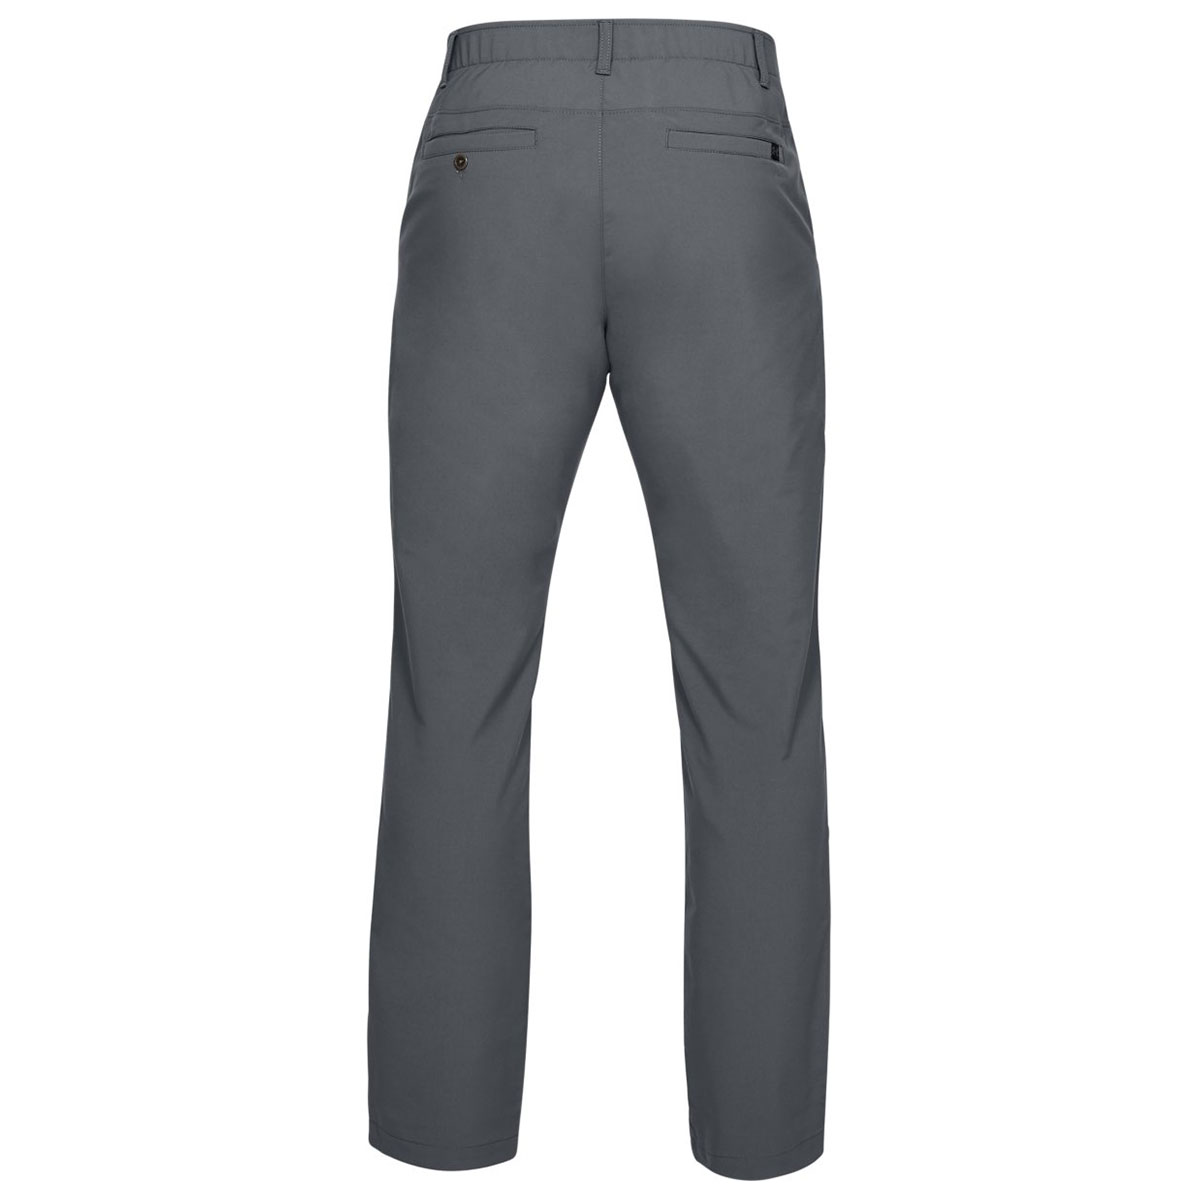 Under-Armour-Mens-2019-EU-Performance-Taper-Soft-Stretch-Golf-Trousers thumbnail 15